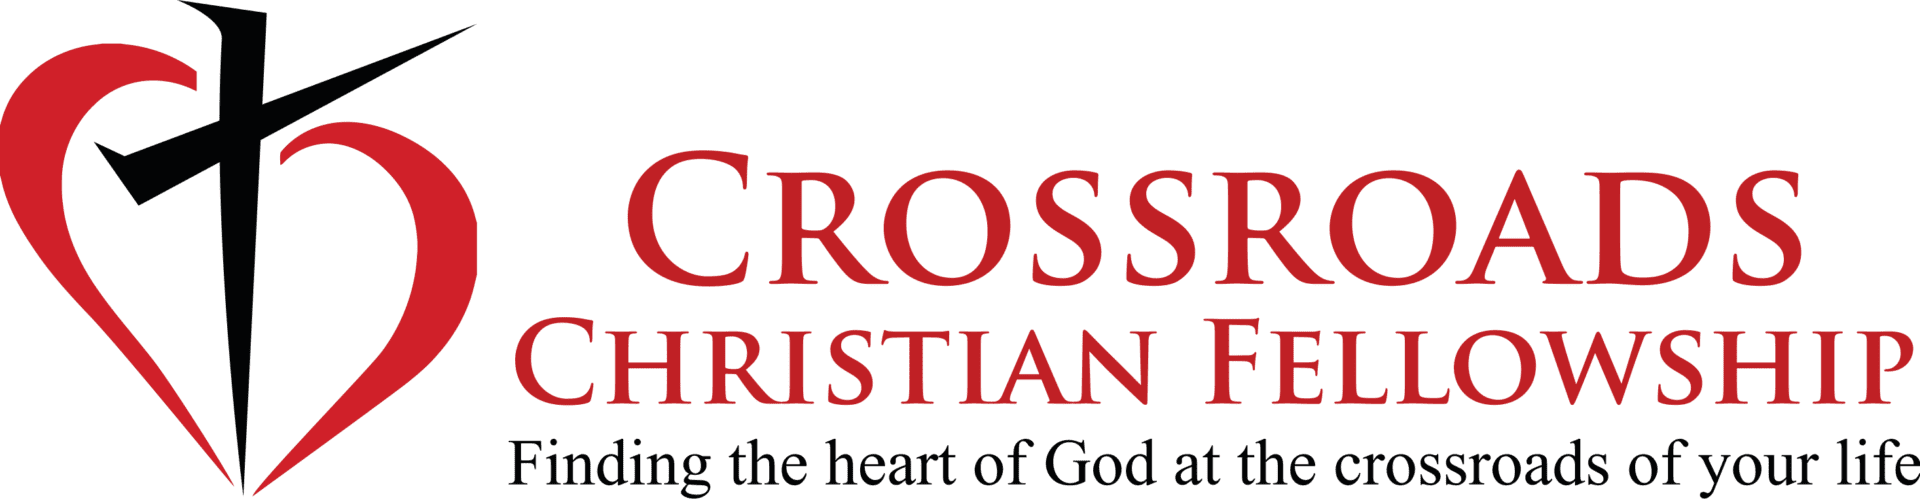 Crossroads Christian Fellowship Logo